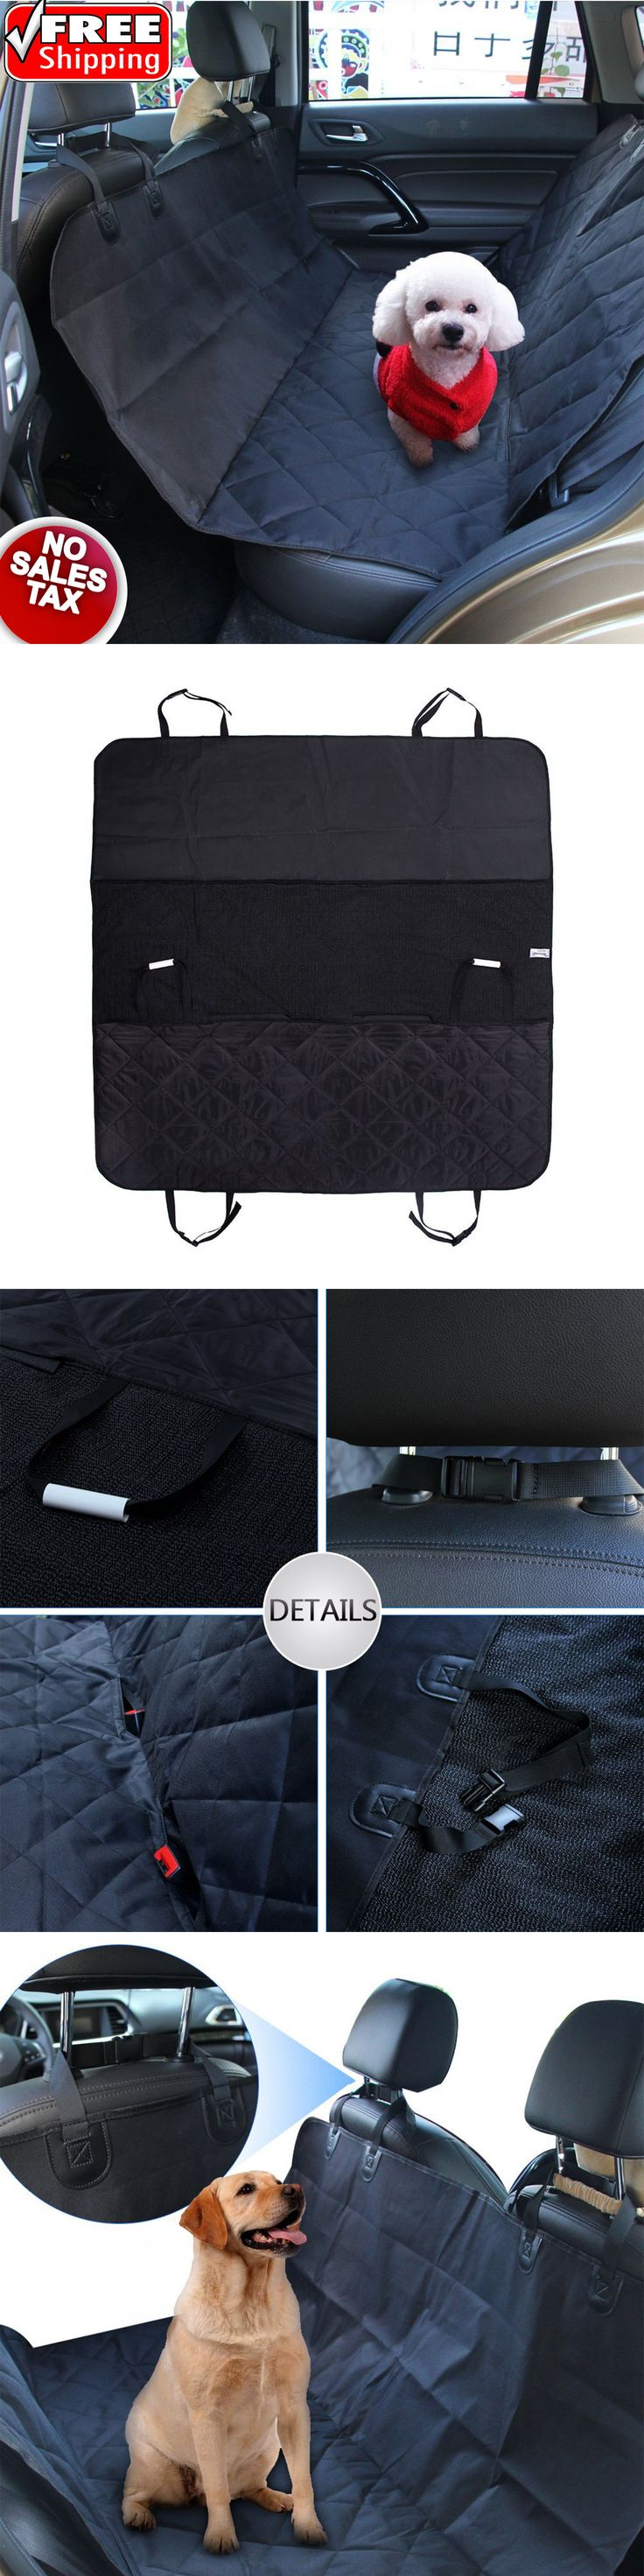 Car Seat Covers 117426: Pet Car Seat Cover Waterproof Hammock Dog Cat Back Rear Protector Travel Animal BUY IT NOW ONLY: $77.96